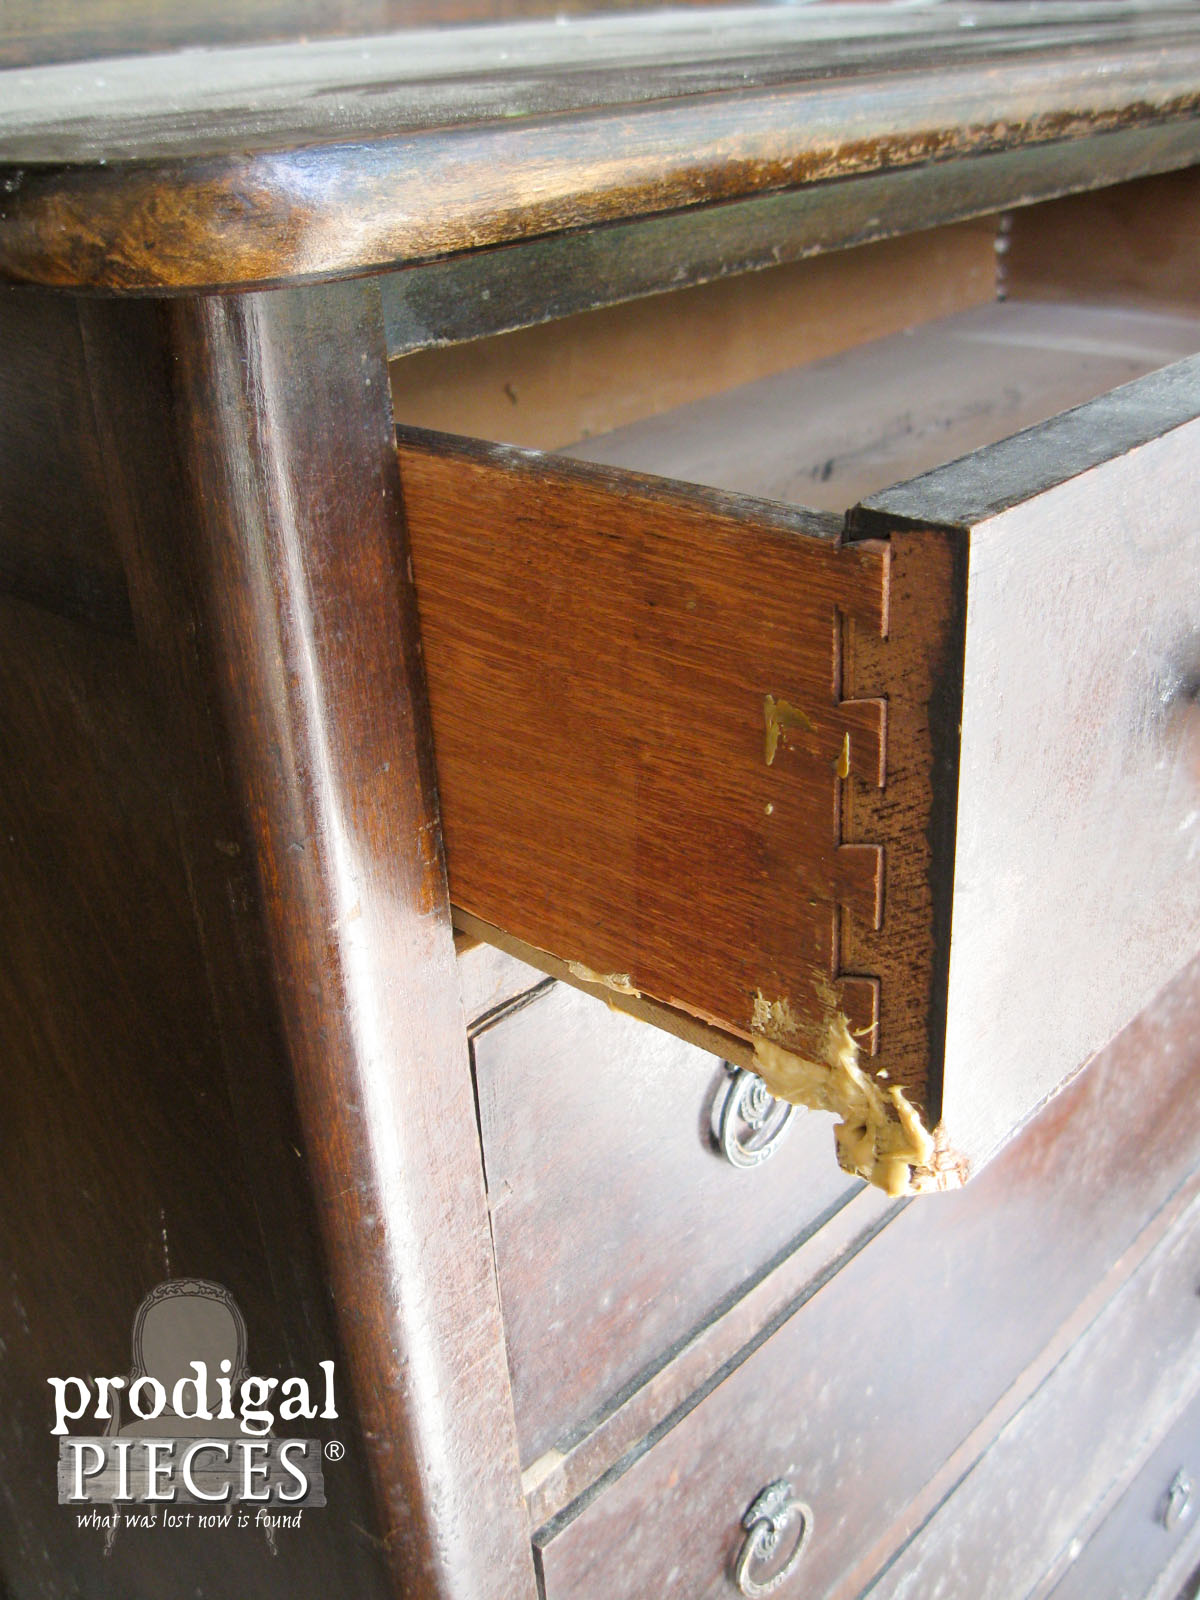 Damaged Drawers on Antique Chest of Drawers | Prodigal Pieces | www.prodigapieces.com